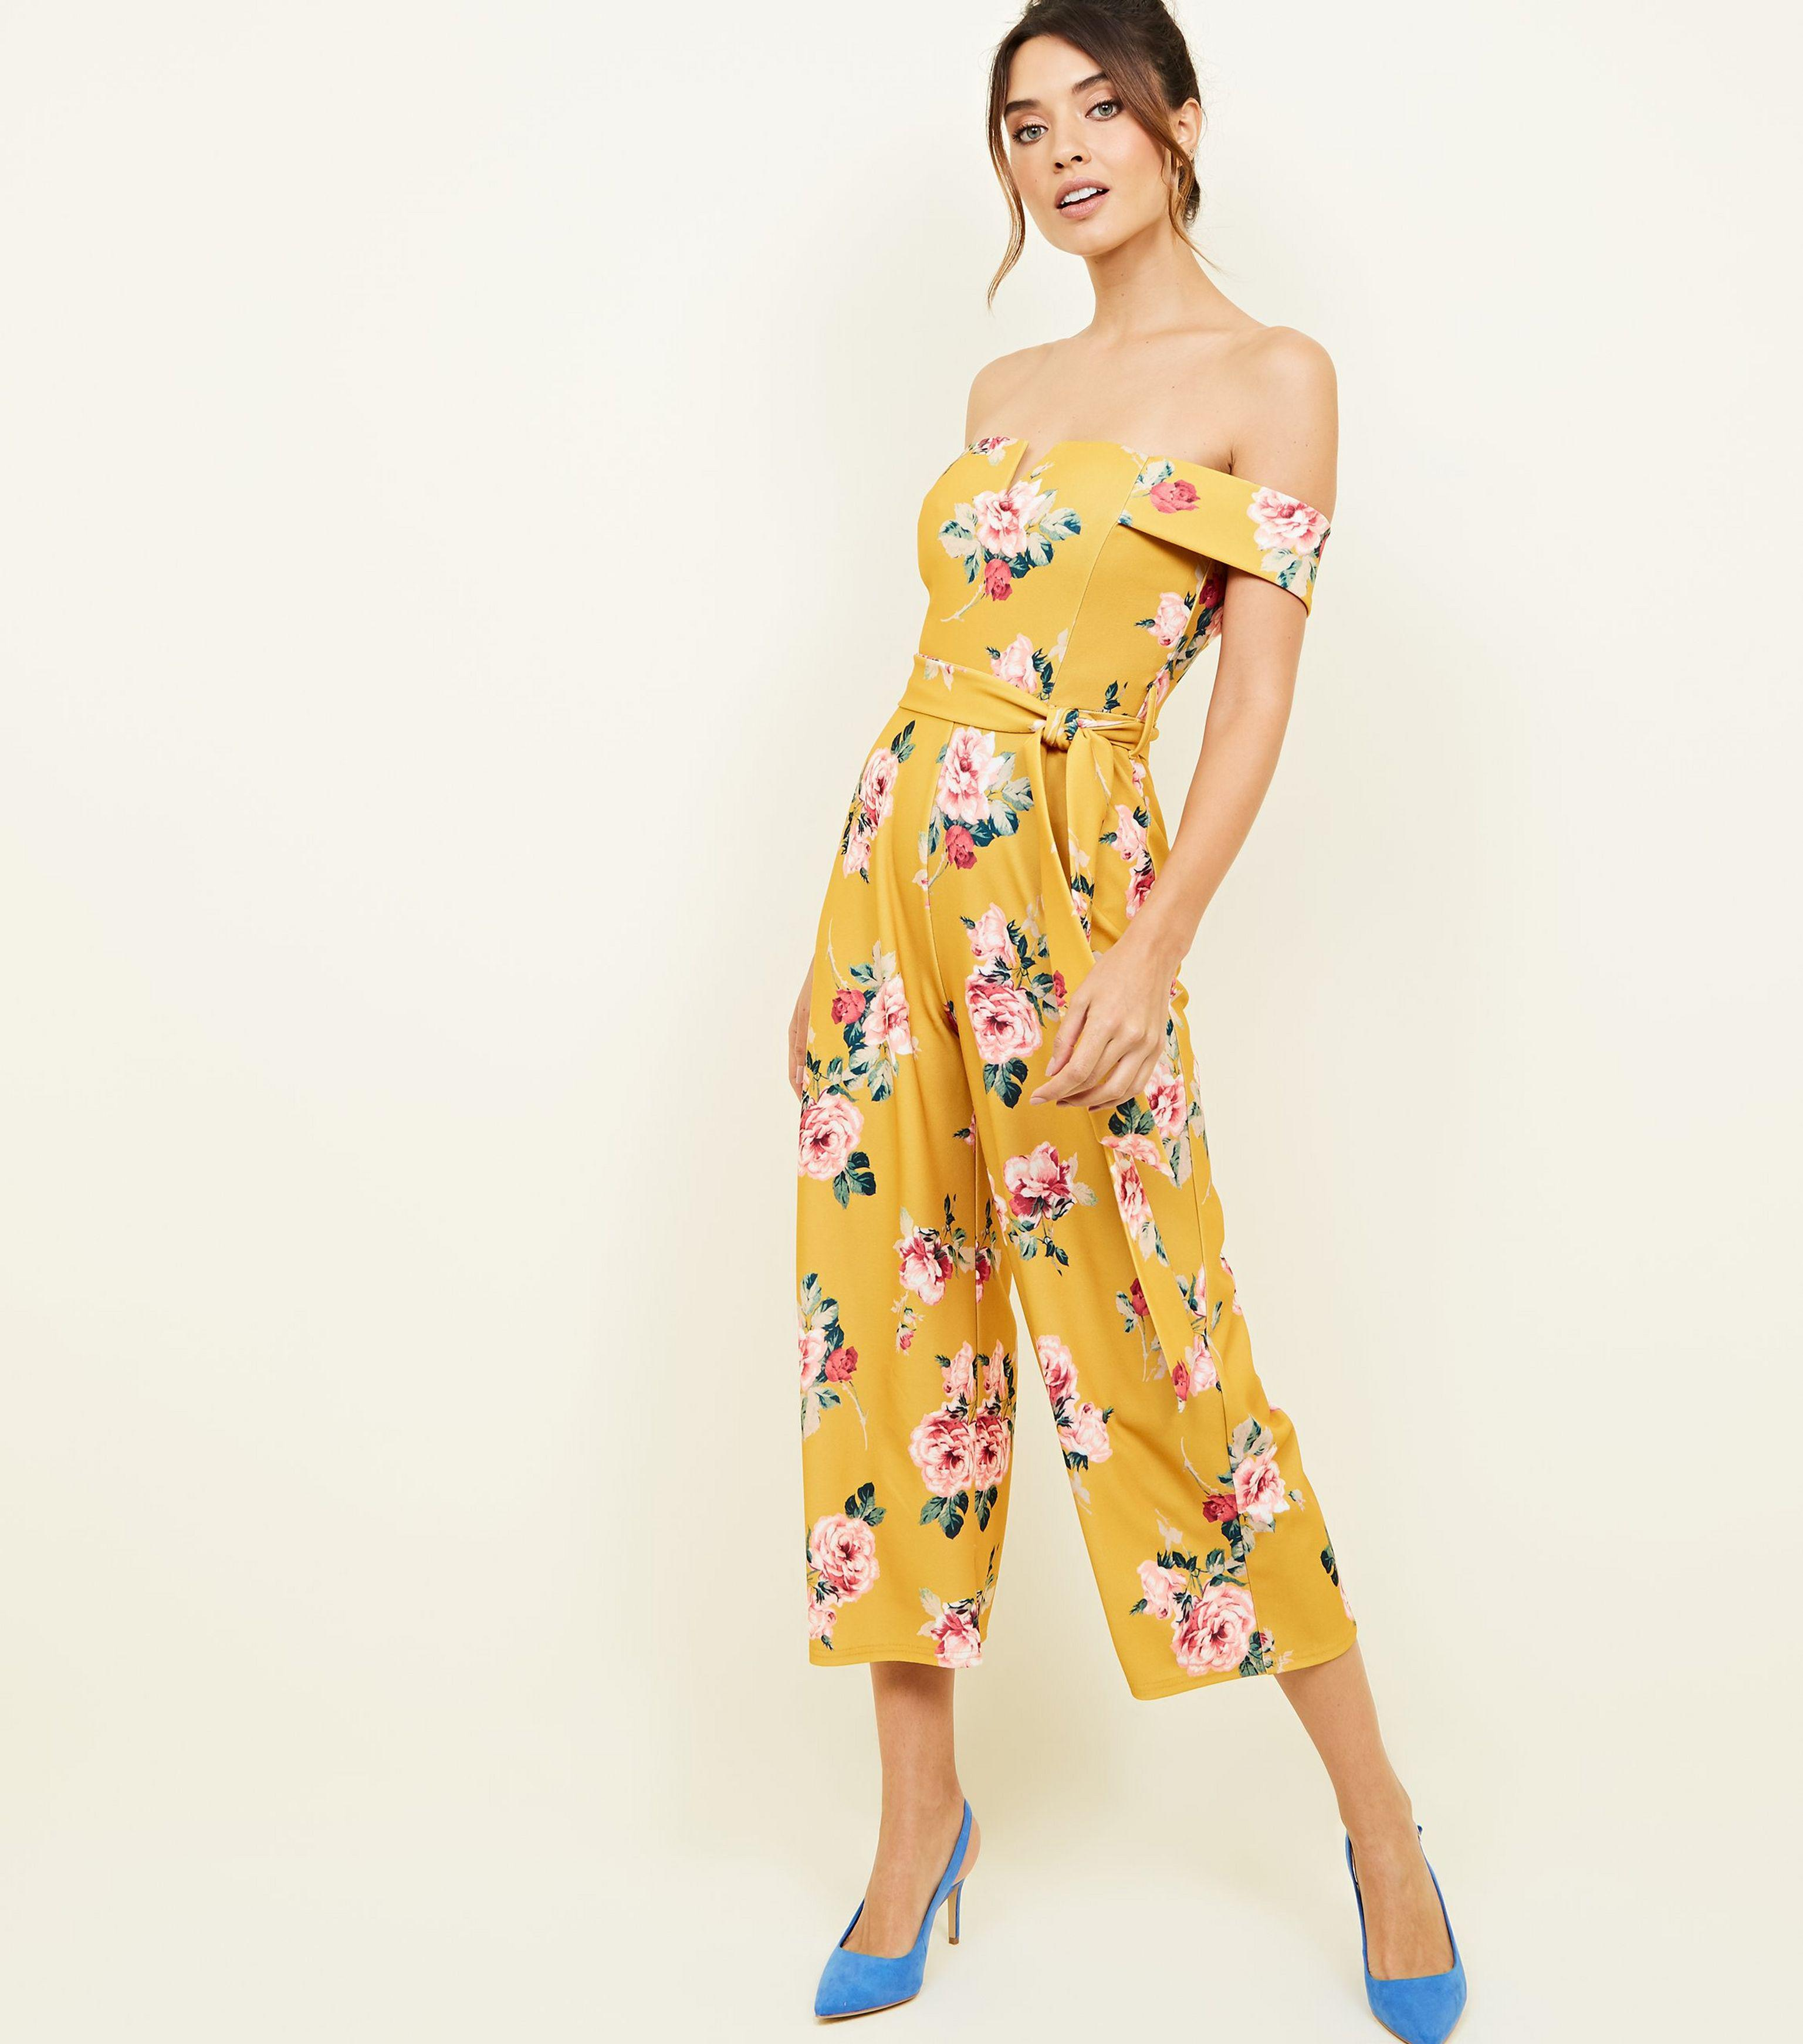 a473d58f4c32 New Look Curves Yellow Floral Bardot Culotte Jumpsuit in Yellow - Lyst